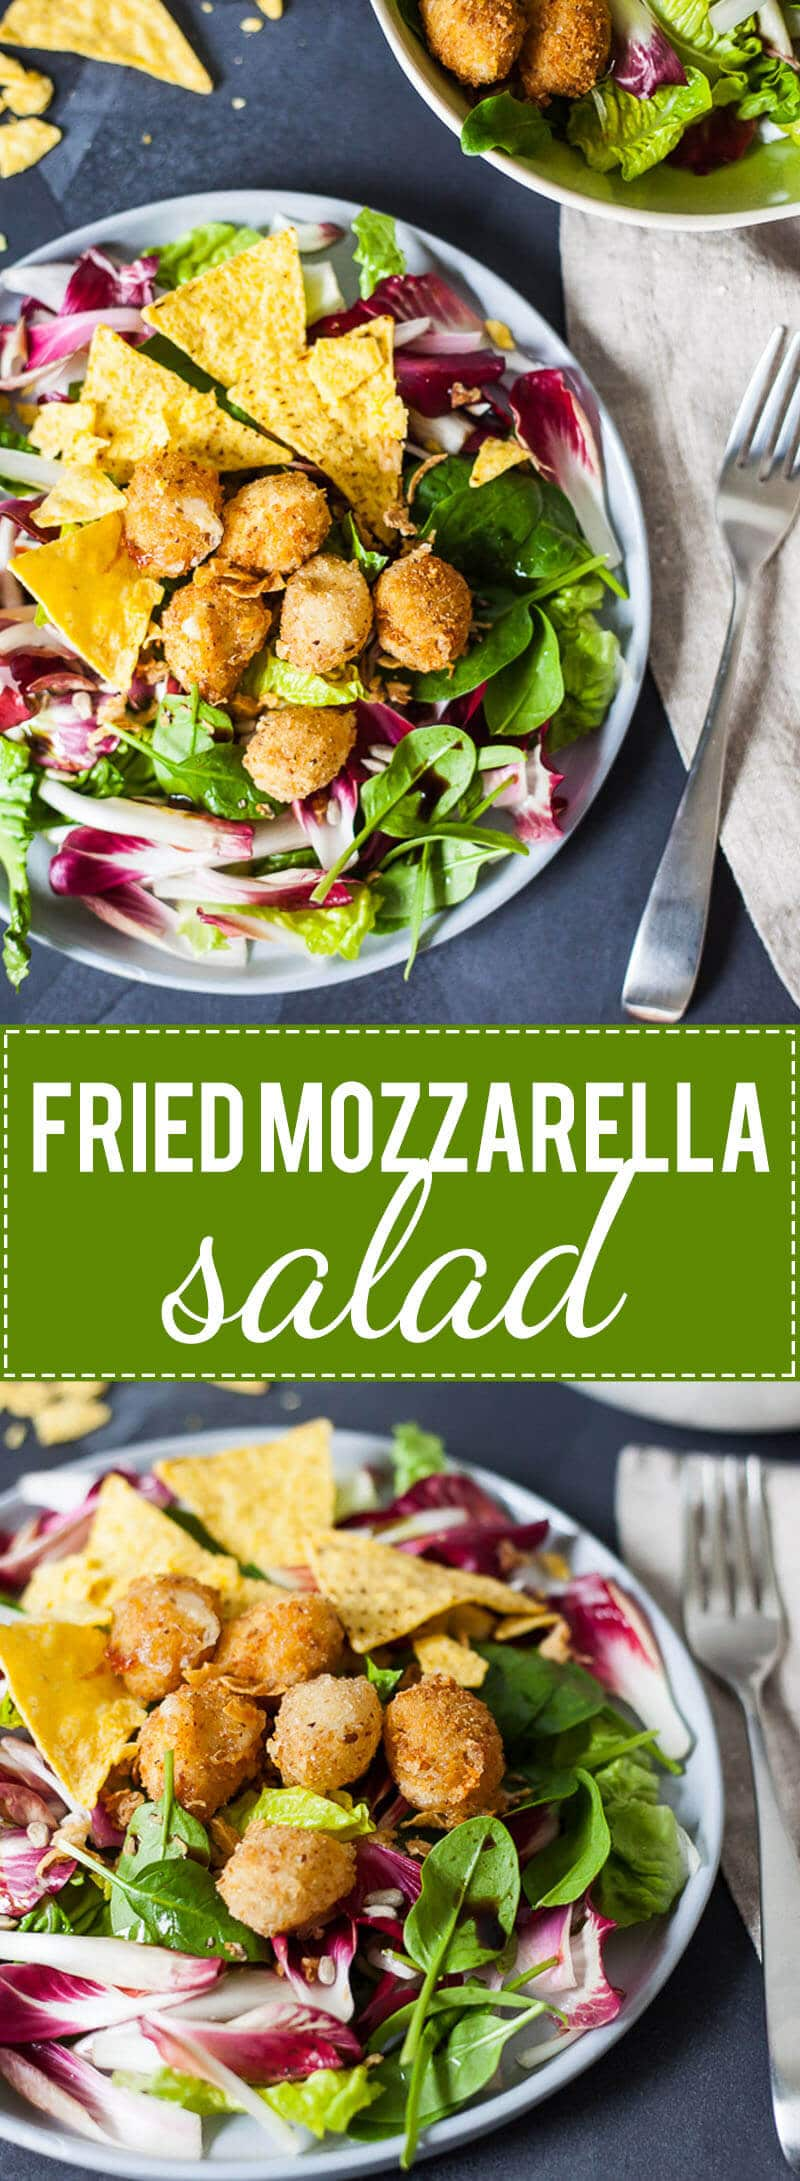 This Fried Mozzarella Salad is perfect when you want to eat healthily, but still, crave something cheesy and fried.